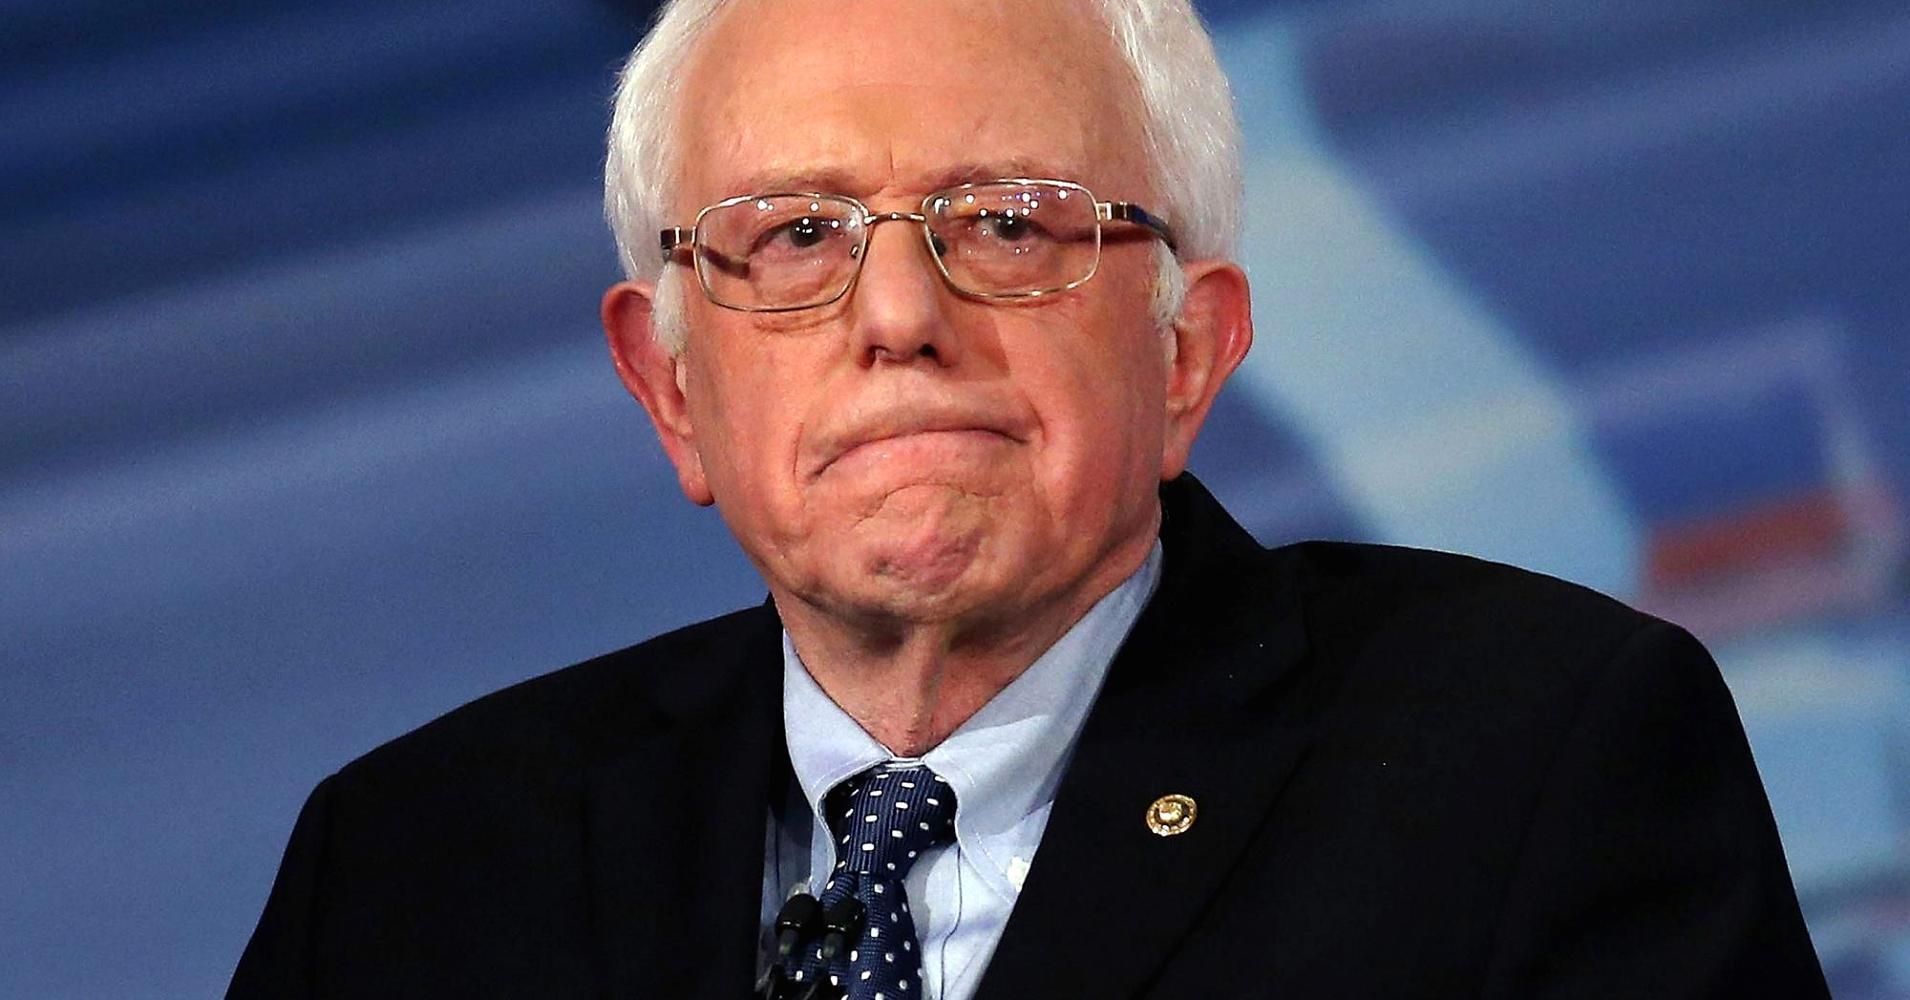 Surprise! Bernie Sanders has backers on Wall Street